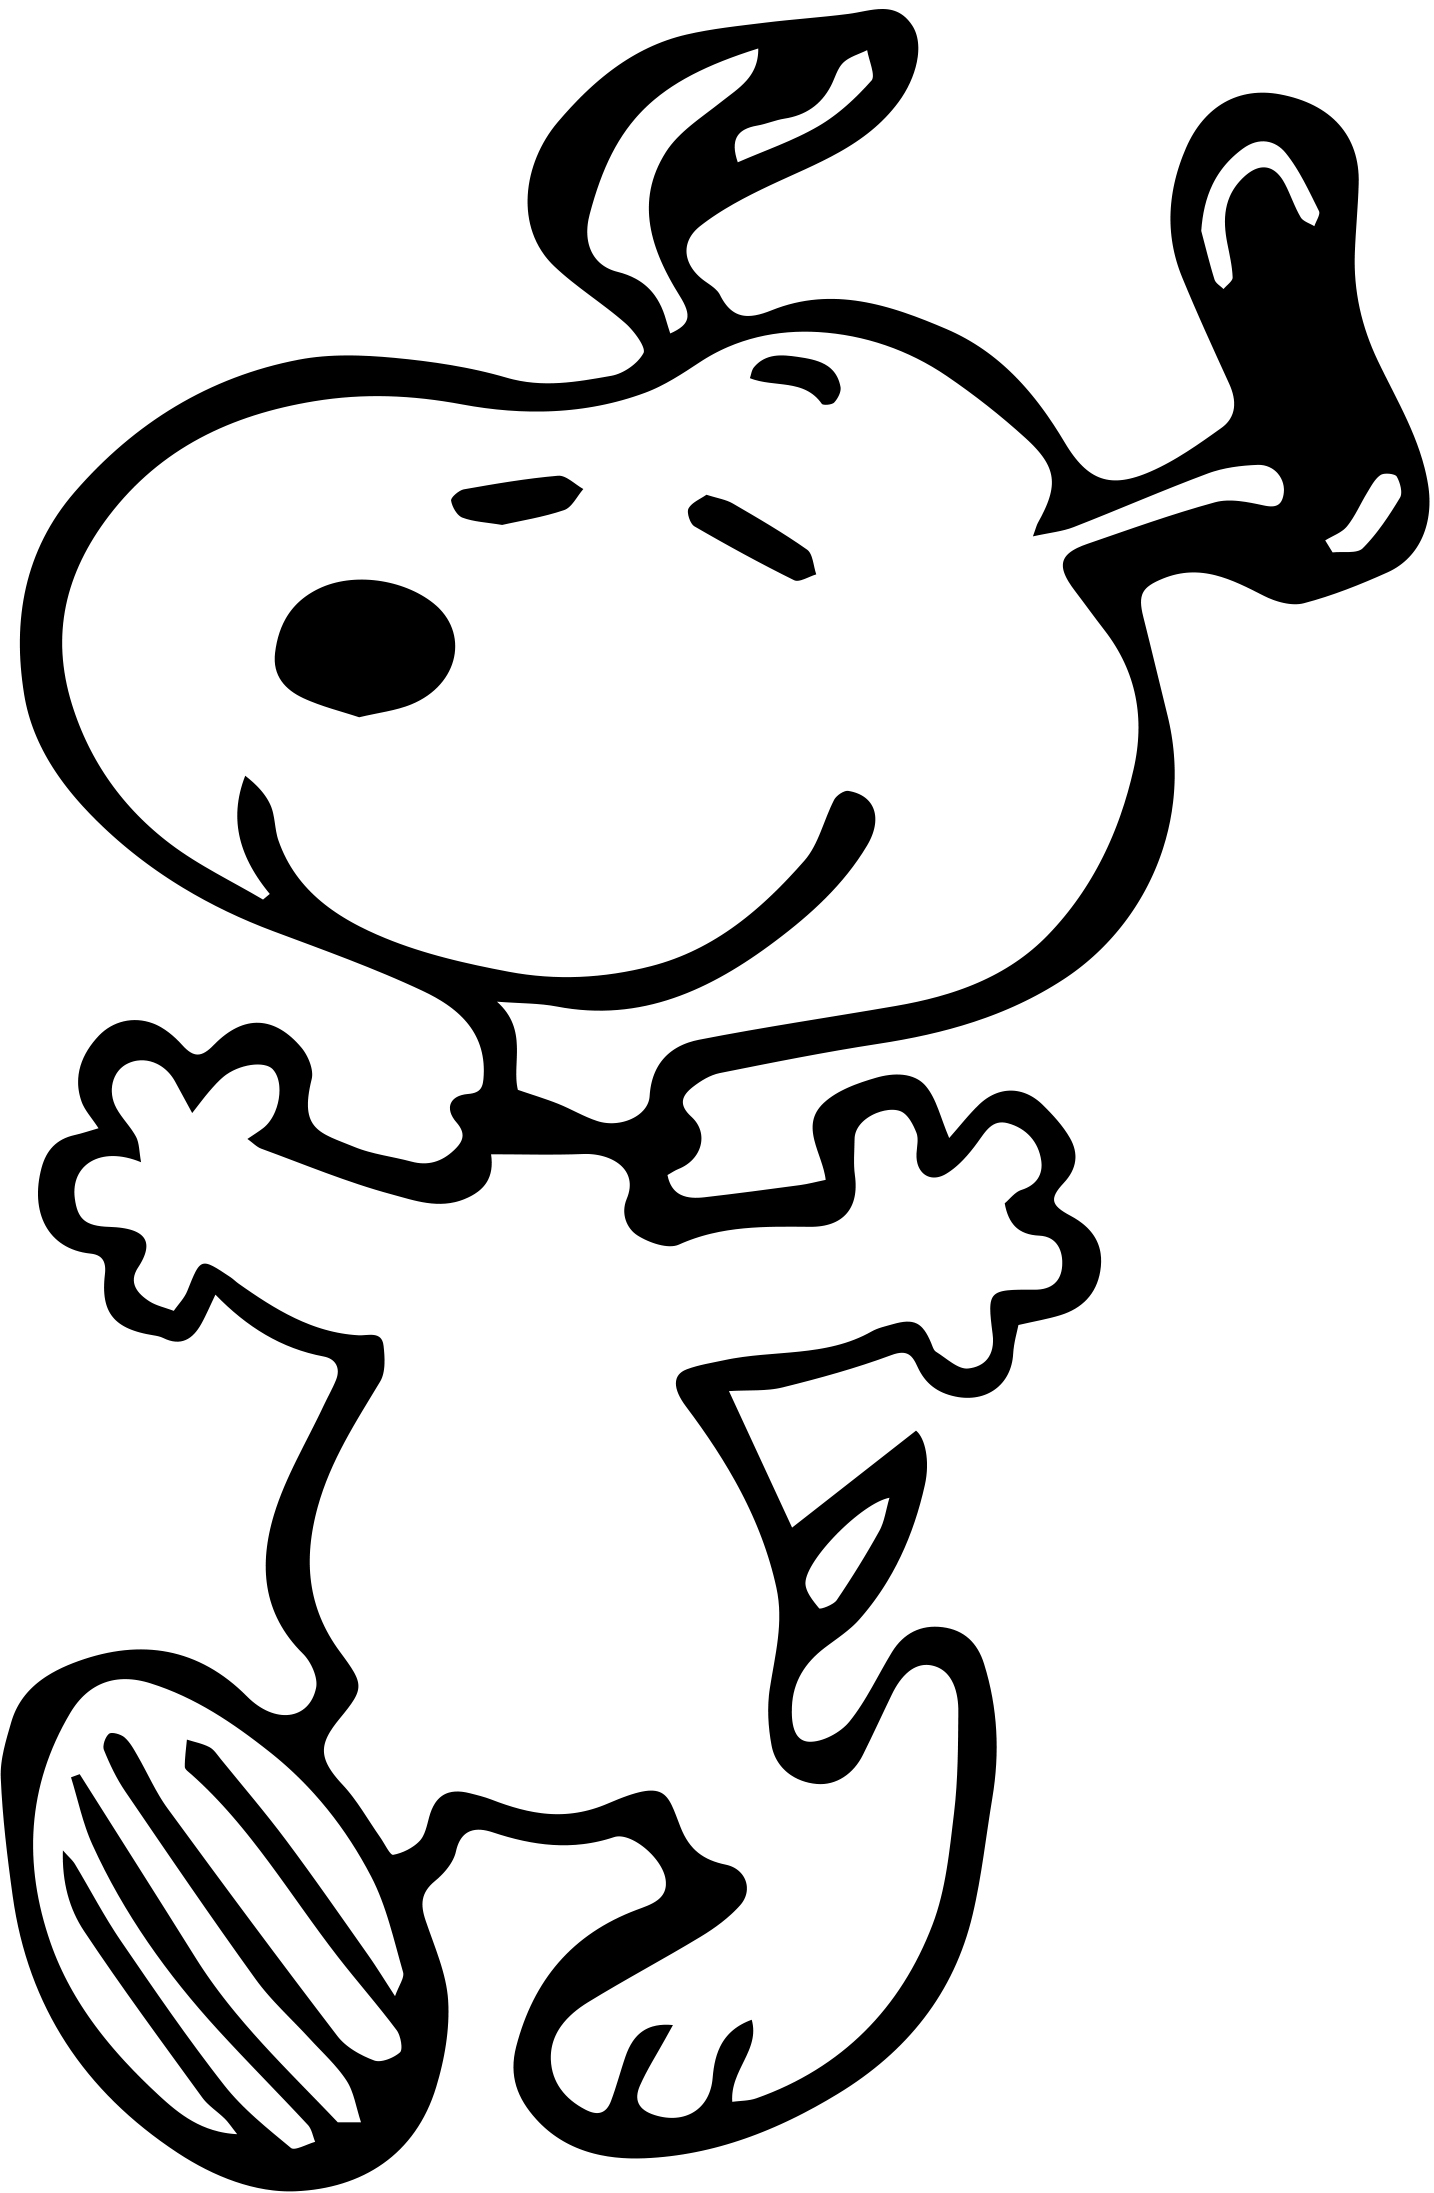 Snoopy happy birthday song bilder snoopy happy birthday - Charlie brown bilder ...